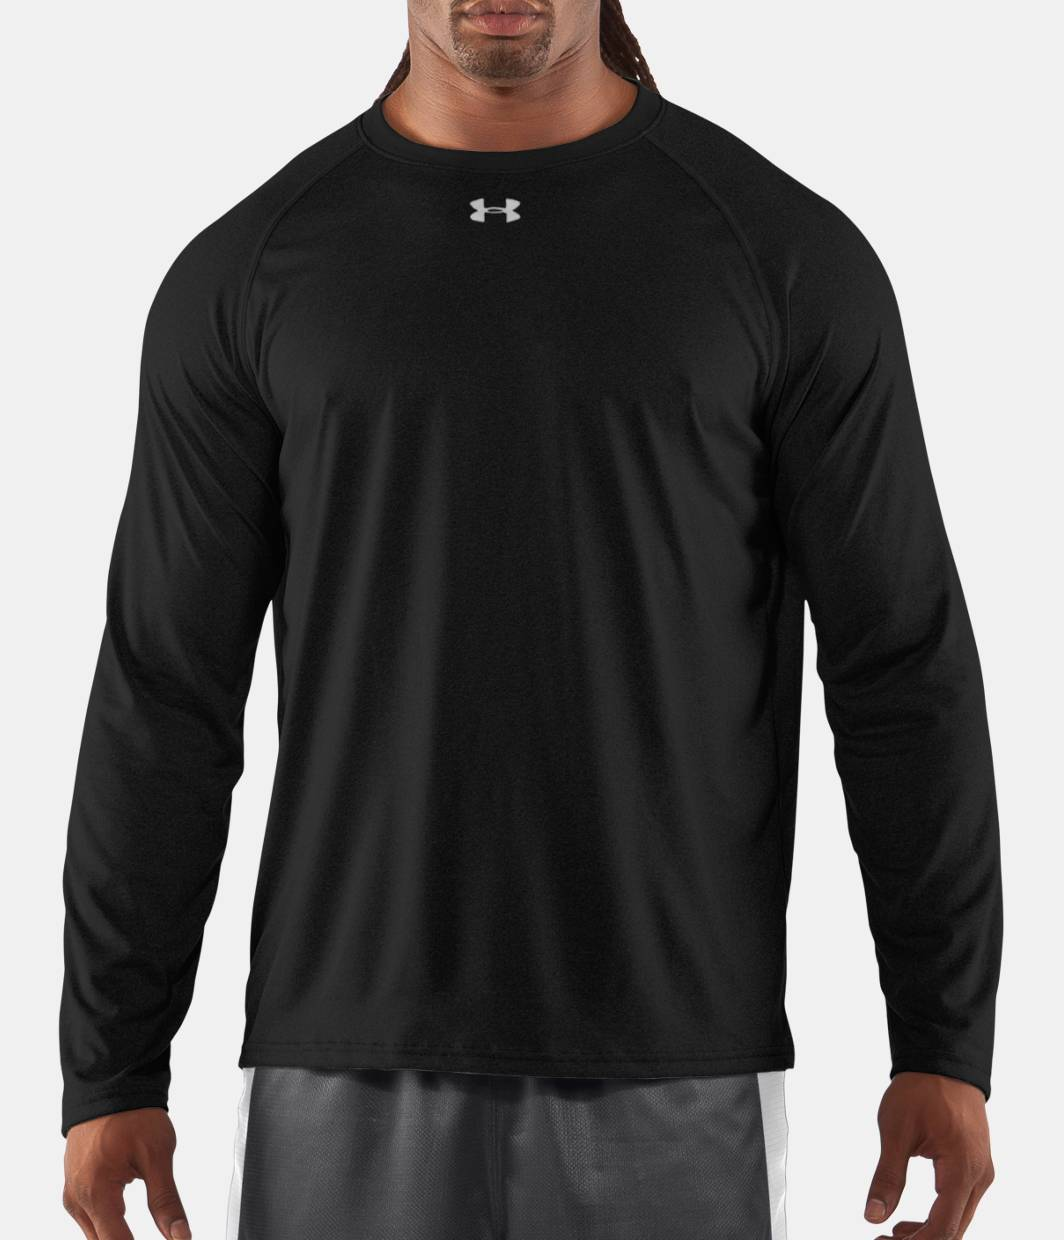 Men s ua locker long sleeve t shirt under armour ca for Men s ua locker long sleeve t shirt